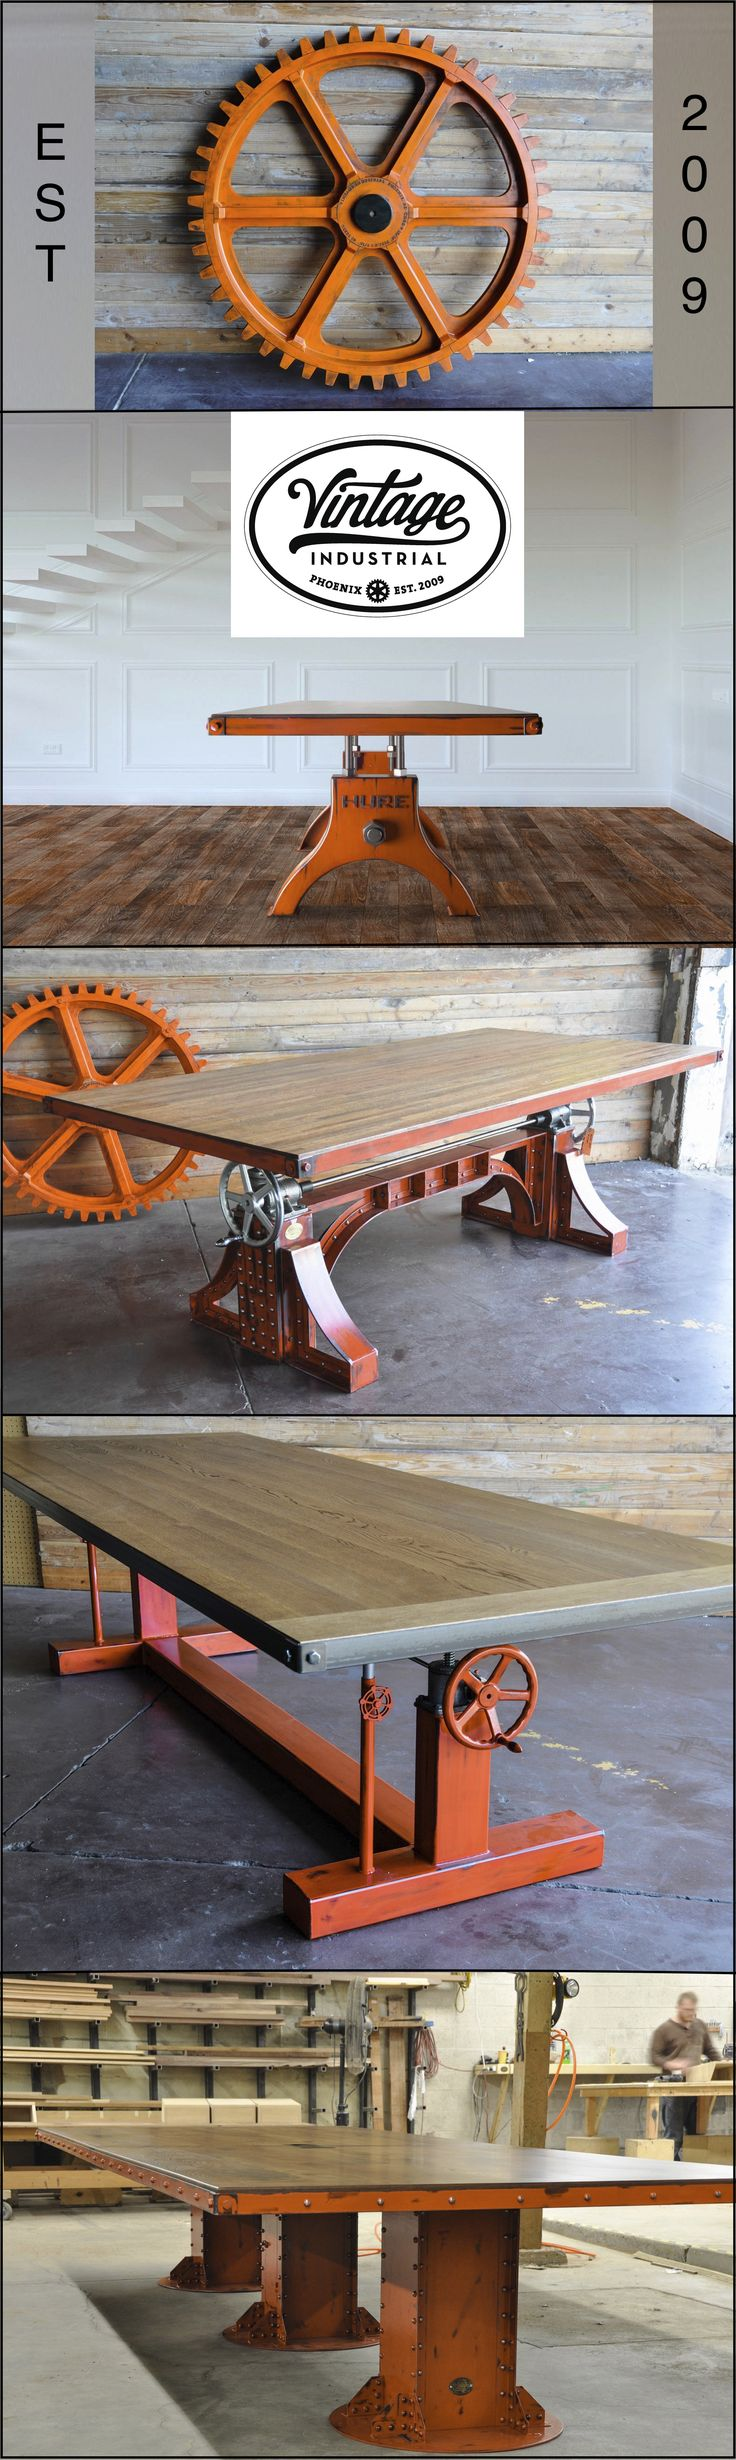 Post industrial conference table vintage industrial furniture - Industrial Orange Gear And Tables Made By Vintage Industrial In Phoenix We Specialize In Dining And Conference Tables